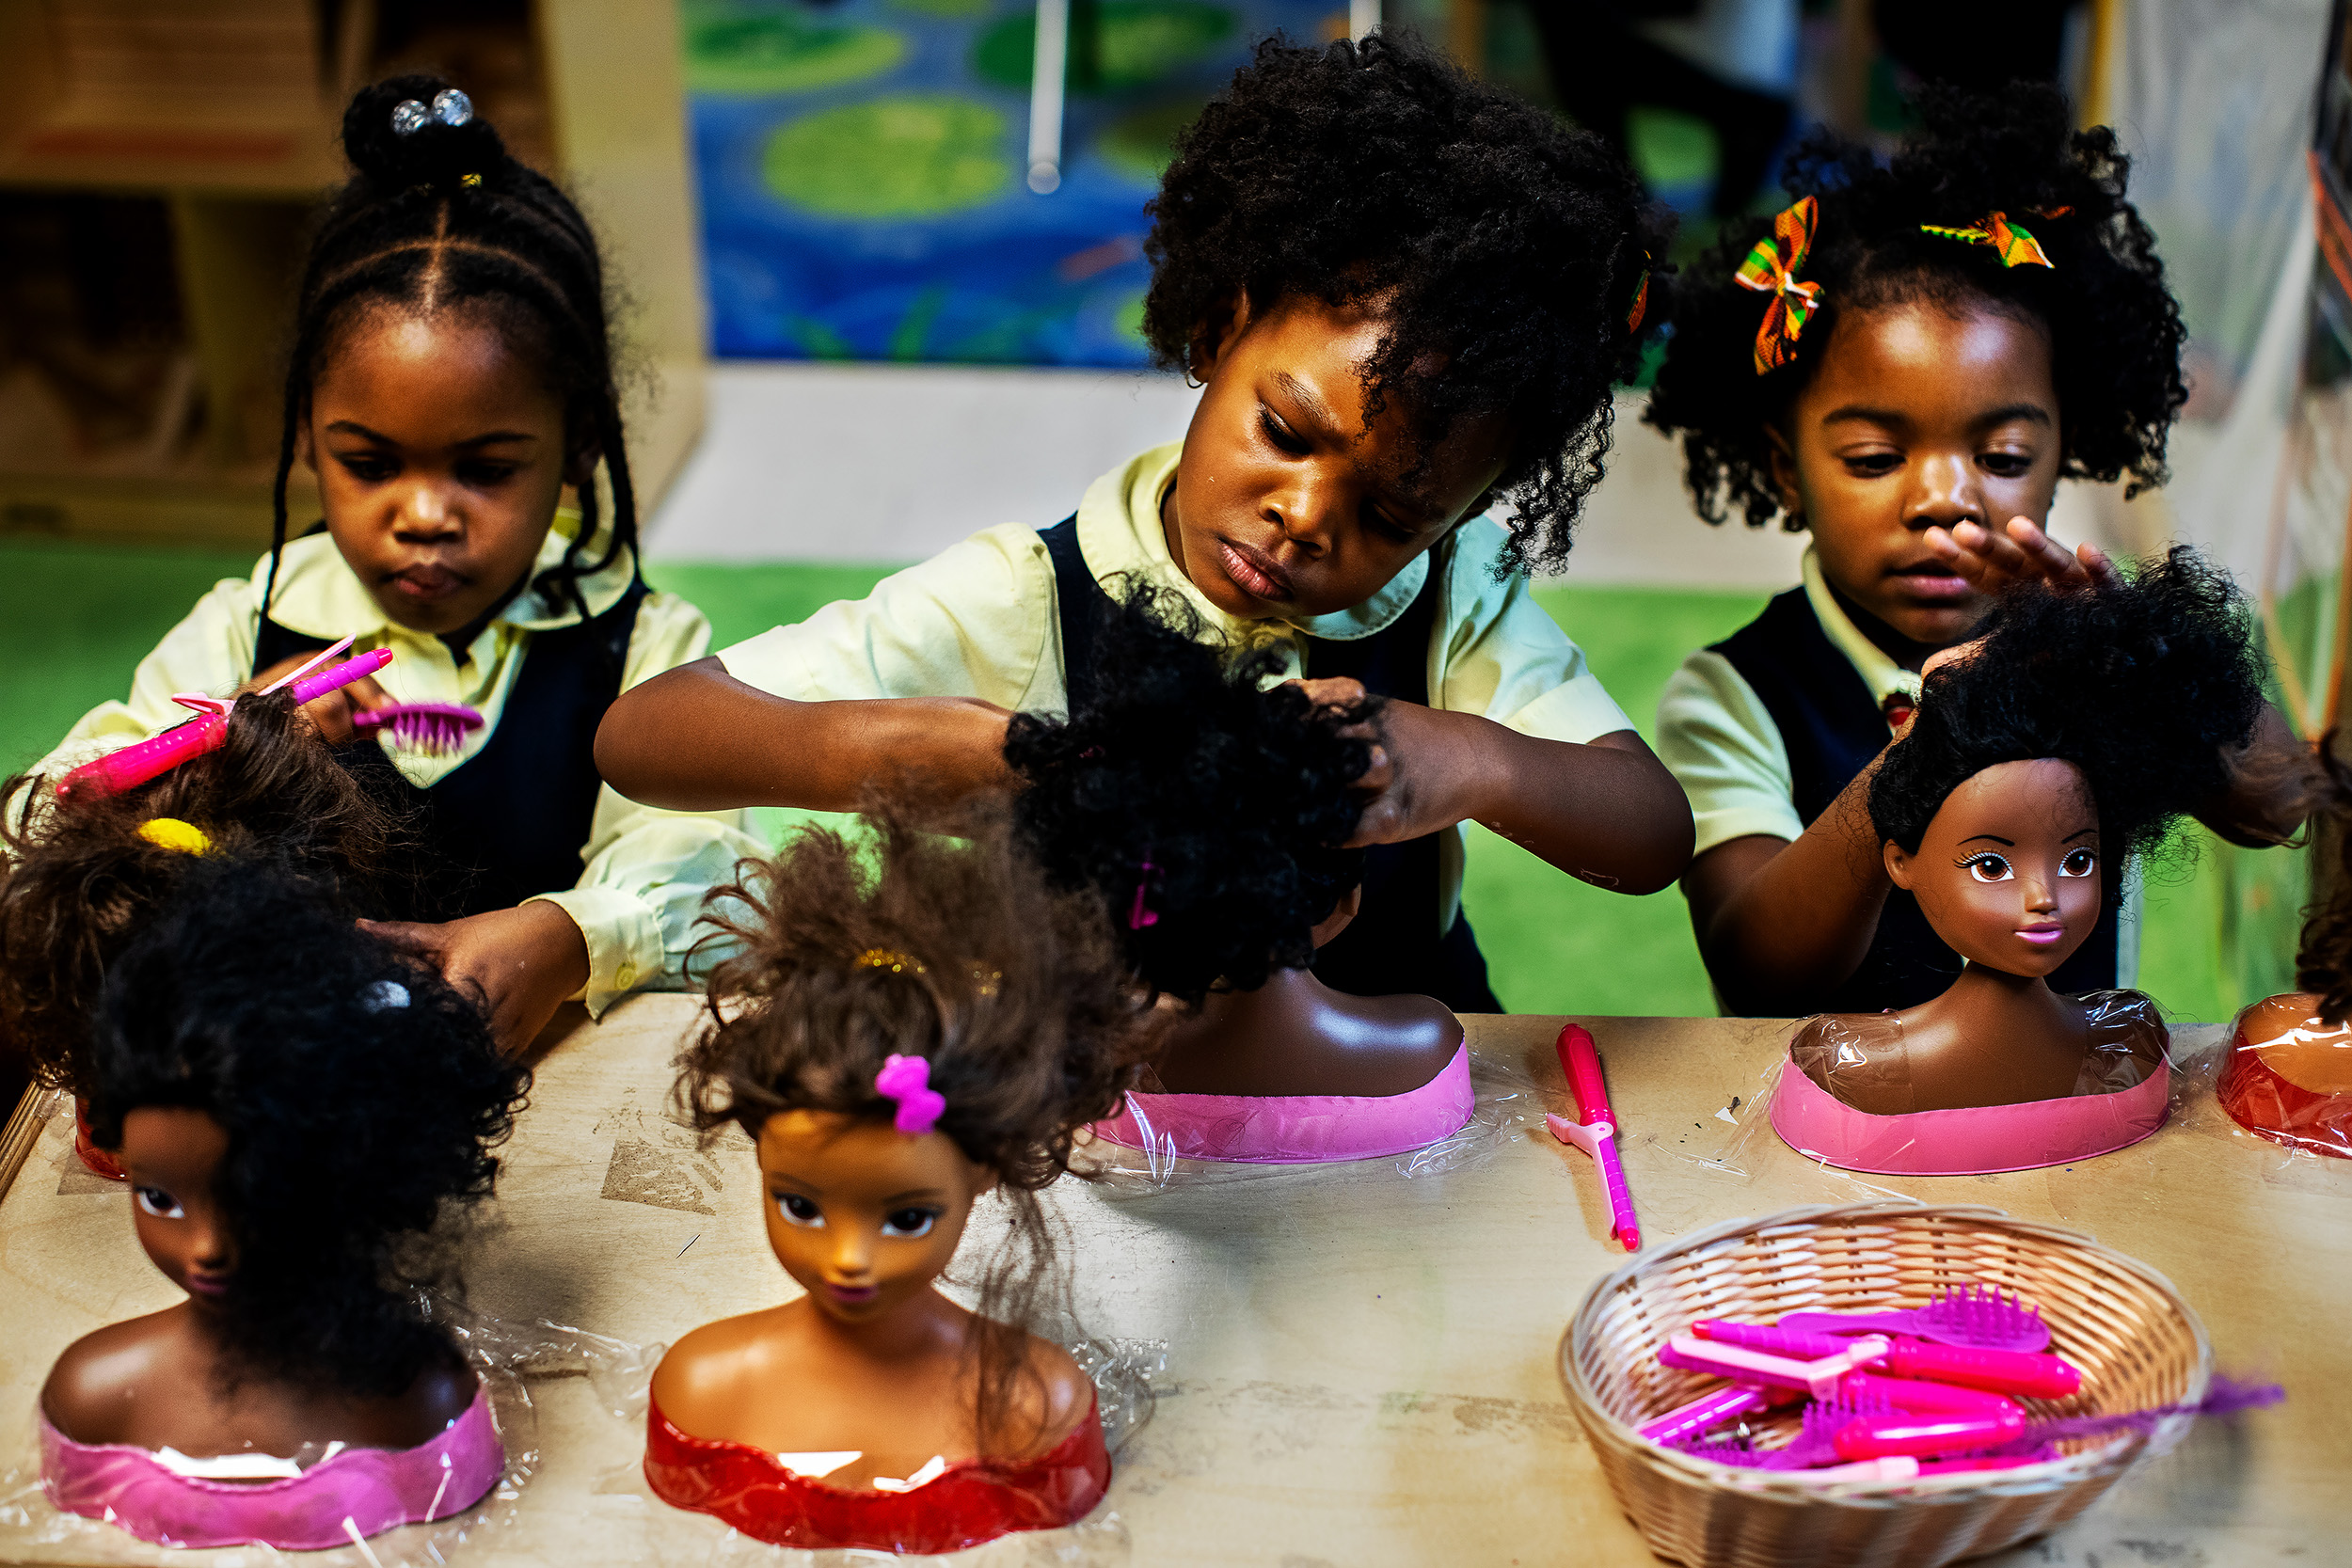 """""""Little Sun Girls""""  Students at the Little Sun People Private Preschool do the hair of dolls during play time in Brooklyn, New York.  Though New York City has tried to desegregate its schools since the 1954 Supreme Court ruling in Brown v. Board of Education, the school system is now one of the most segregated in the nation. But rather than pushing for integration, some black parents in Bedford-Stuyvesant are choosing an alternative: schools explicitly designed for black children."""